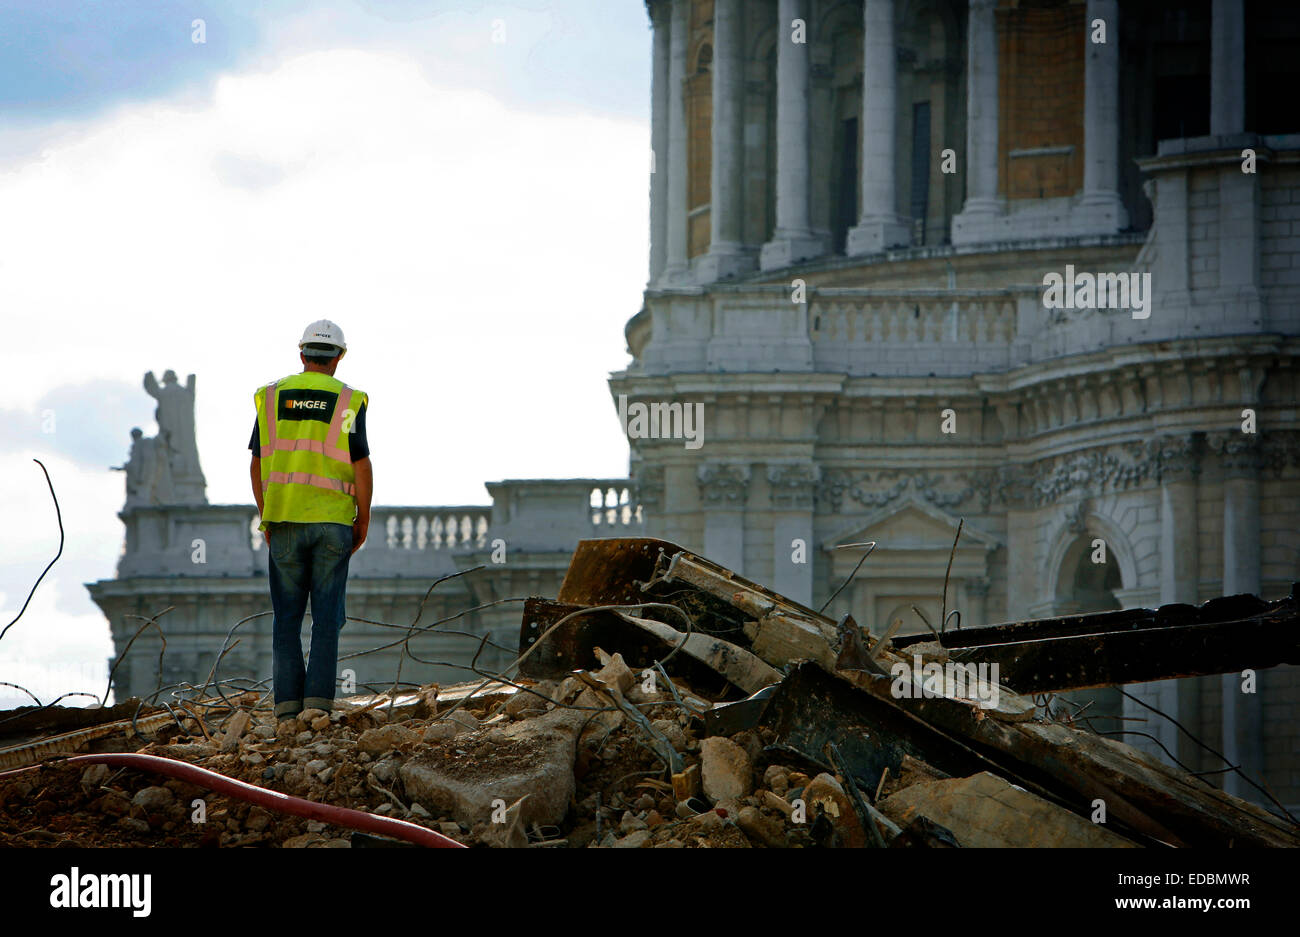 Mc Gee Builders work in the City, with the View of St Pauls Cathederal - Stock Image